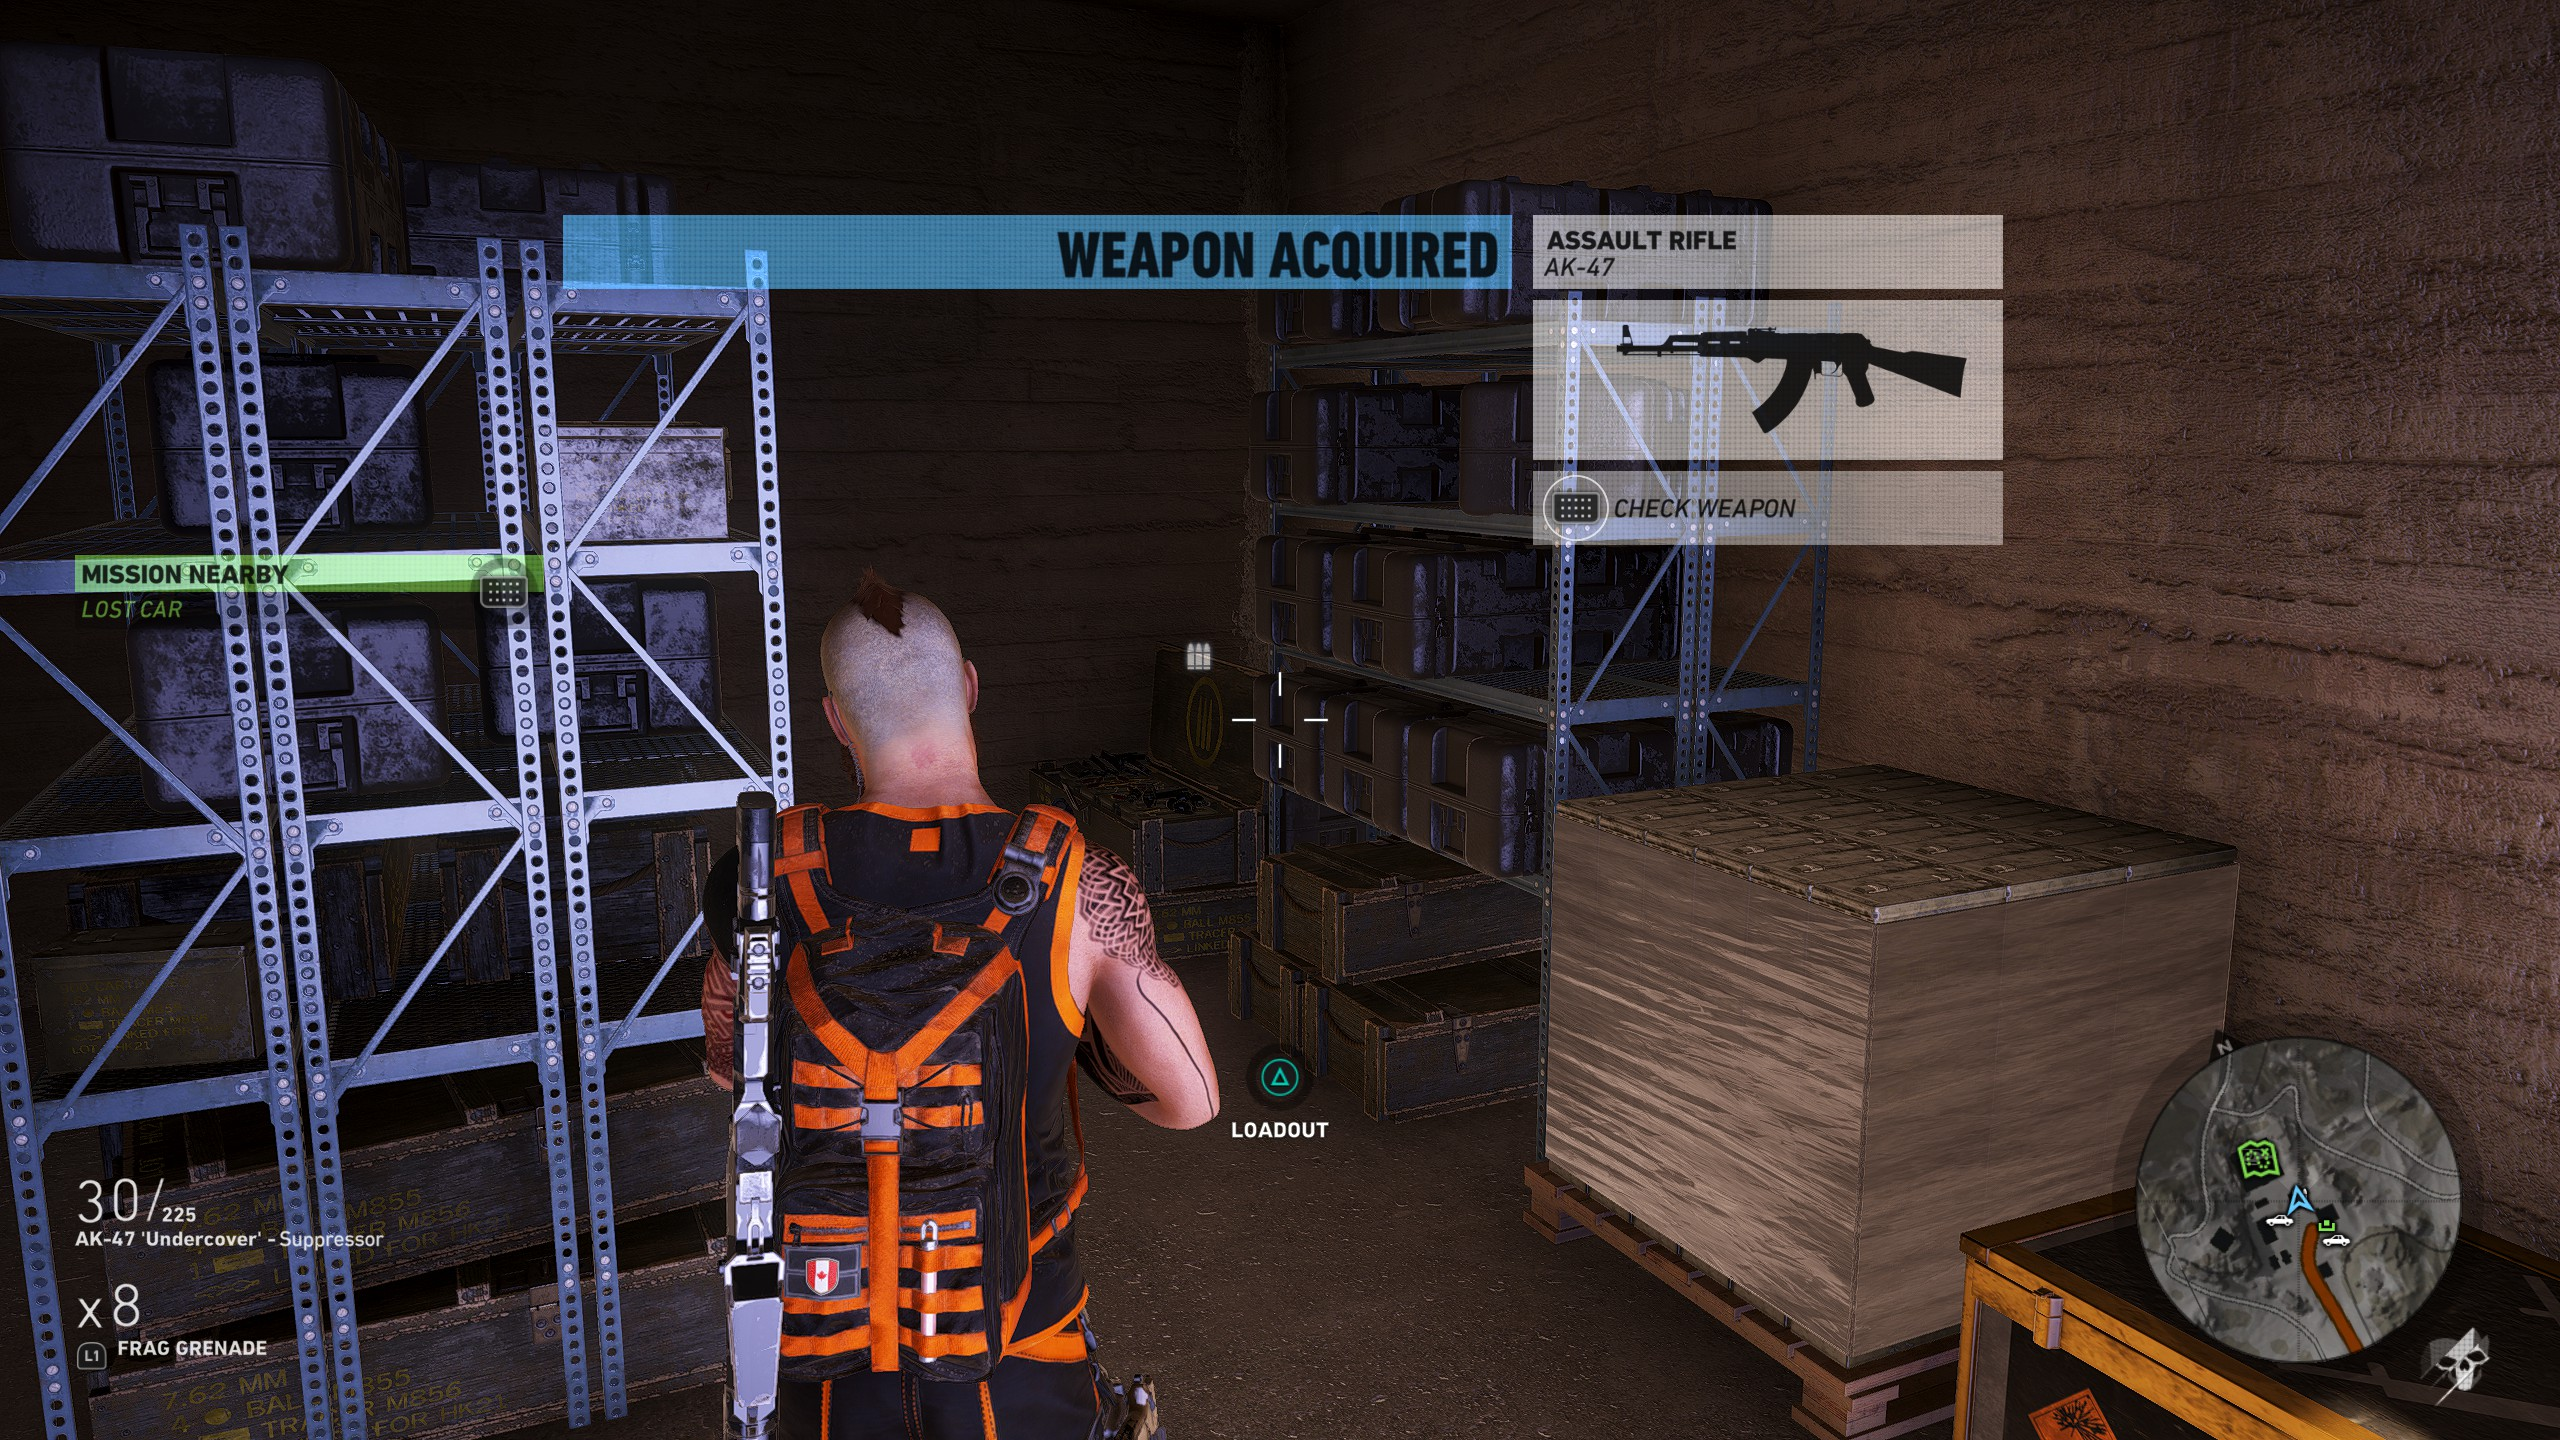 Clear out the Unidad troops and grab the AK 47 from the Weapon Case